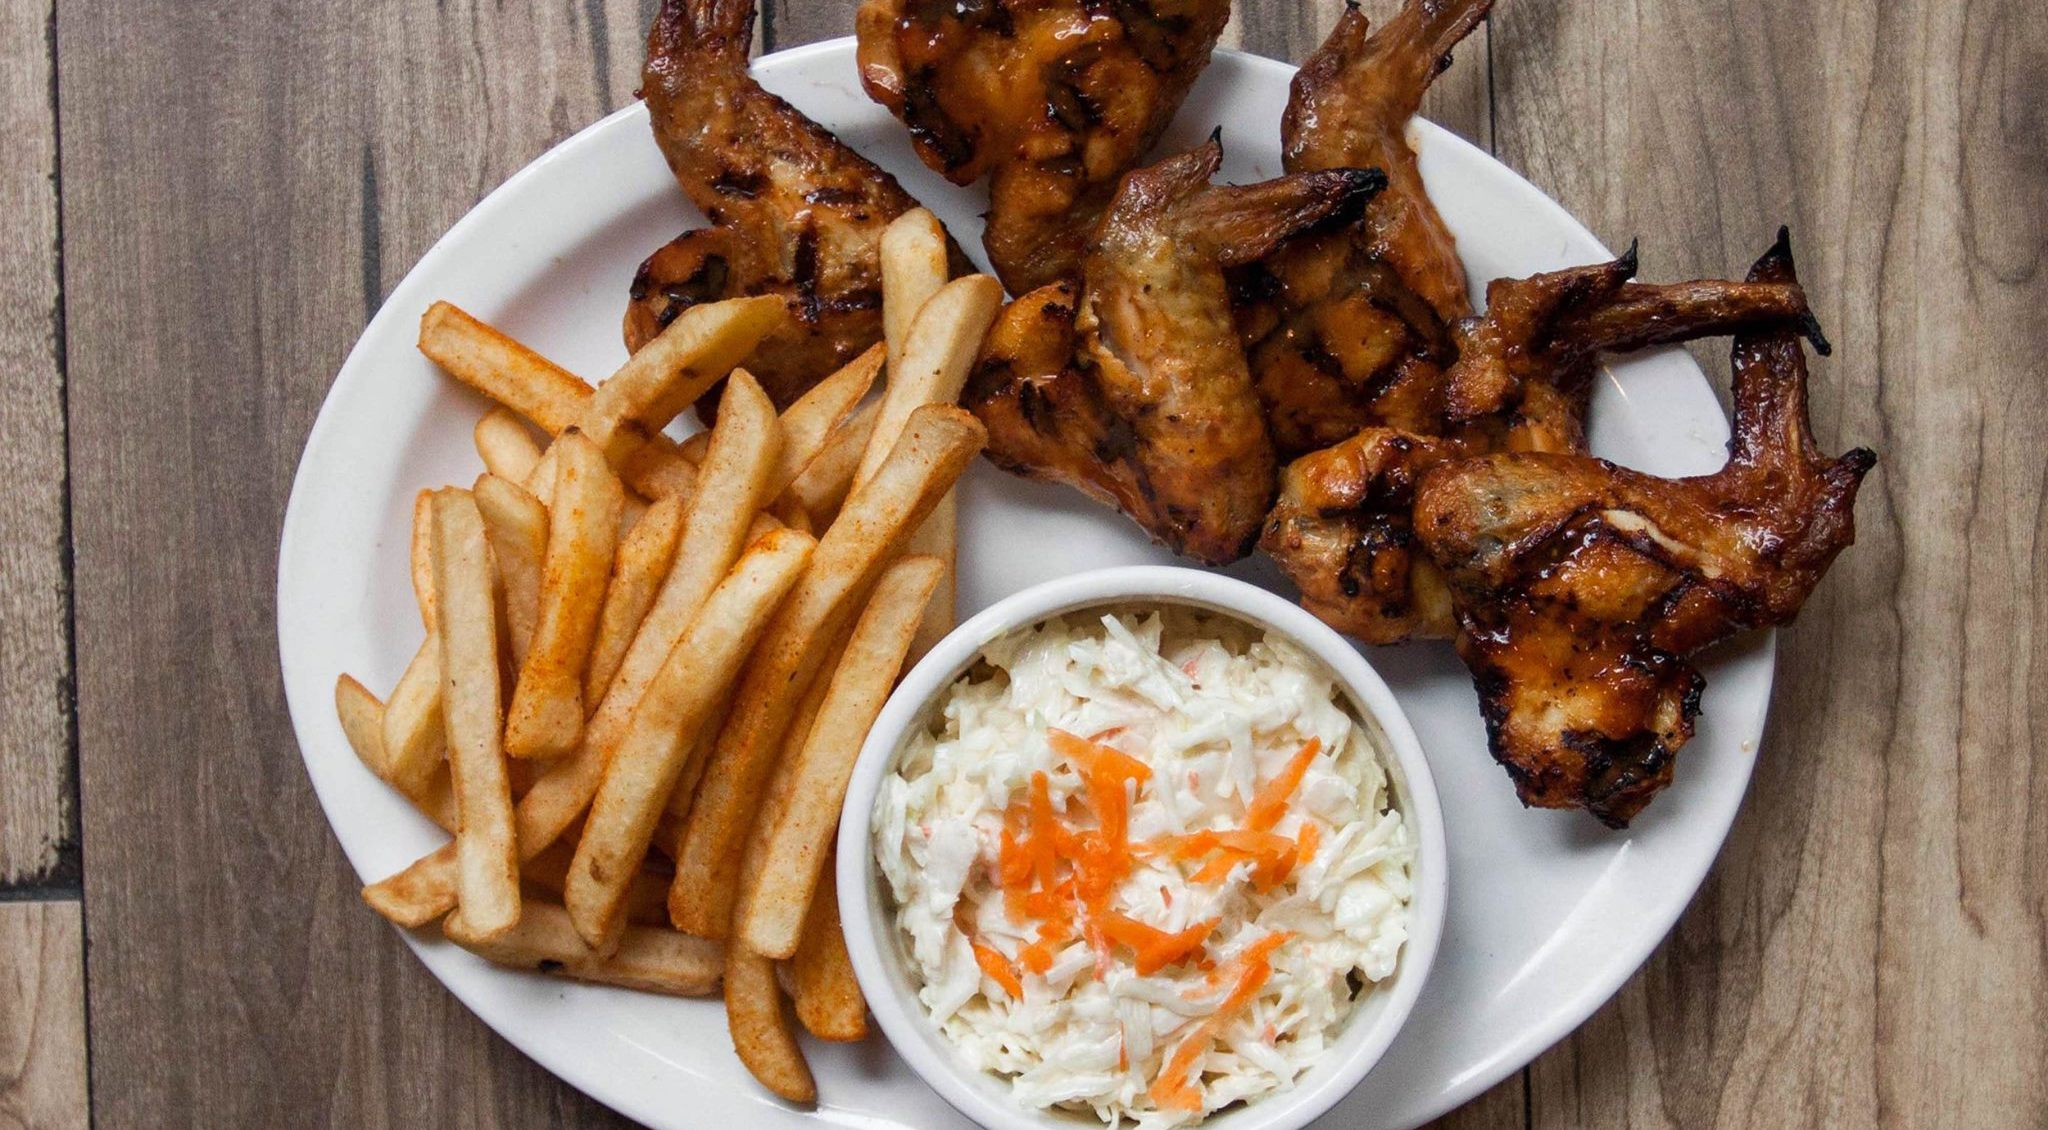 Best Montreal Chicken Wings